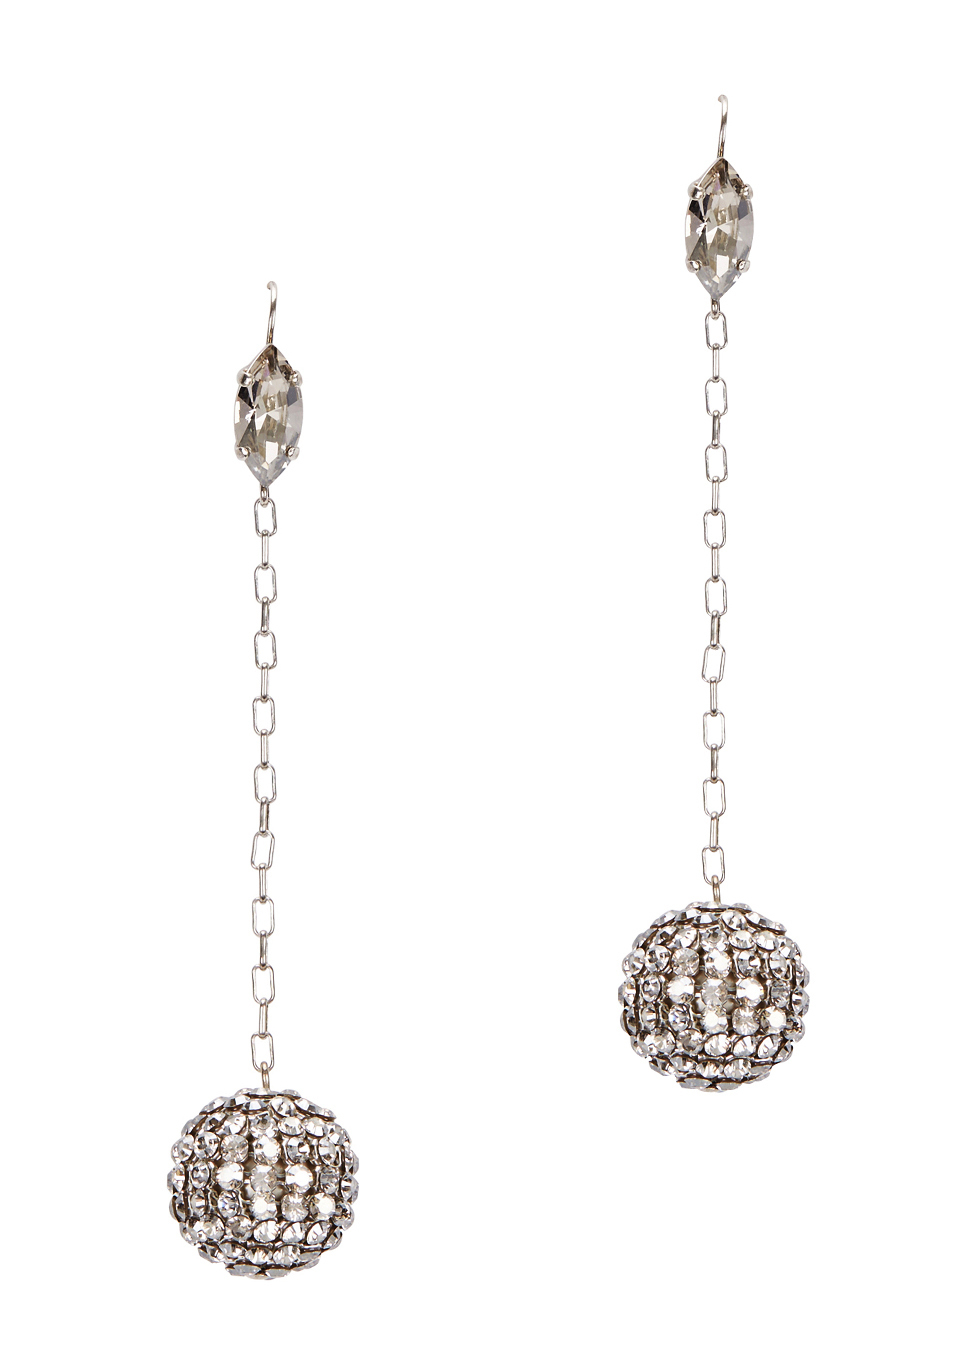 Silver Tone Crystal Embellished Drop Earrings - predominant colour: silver; occasions: evening, occasion; style: drop; length: long; size: standard; material: chain/metal; fastening: pierced; finish: plain; embellishment: crystals/glass; season: a/w 2016; wardrobe: event